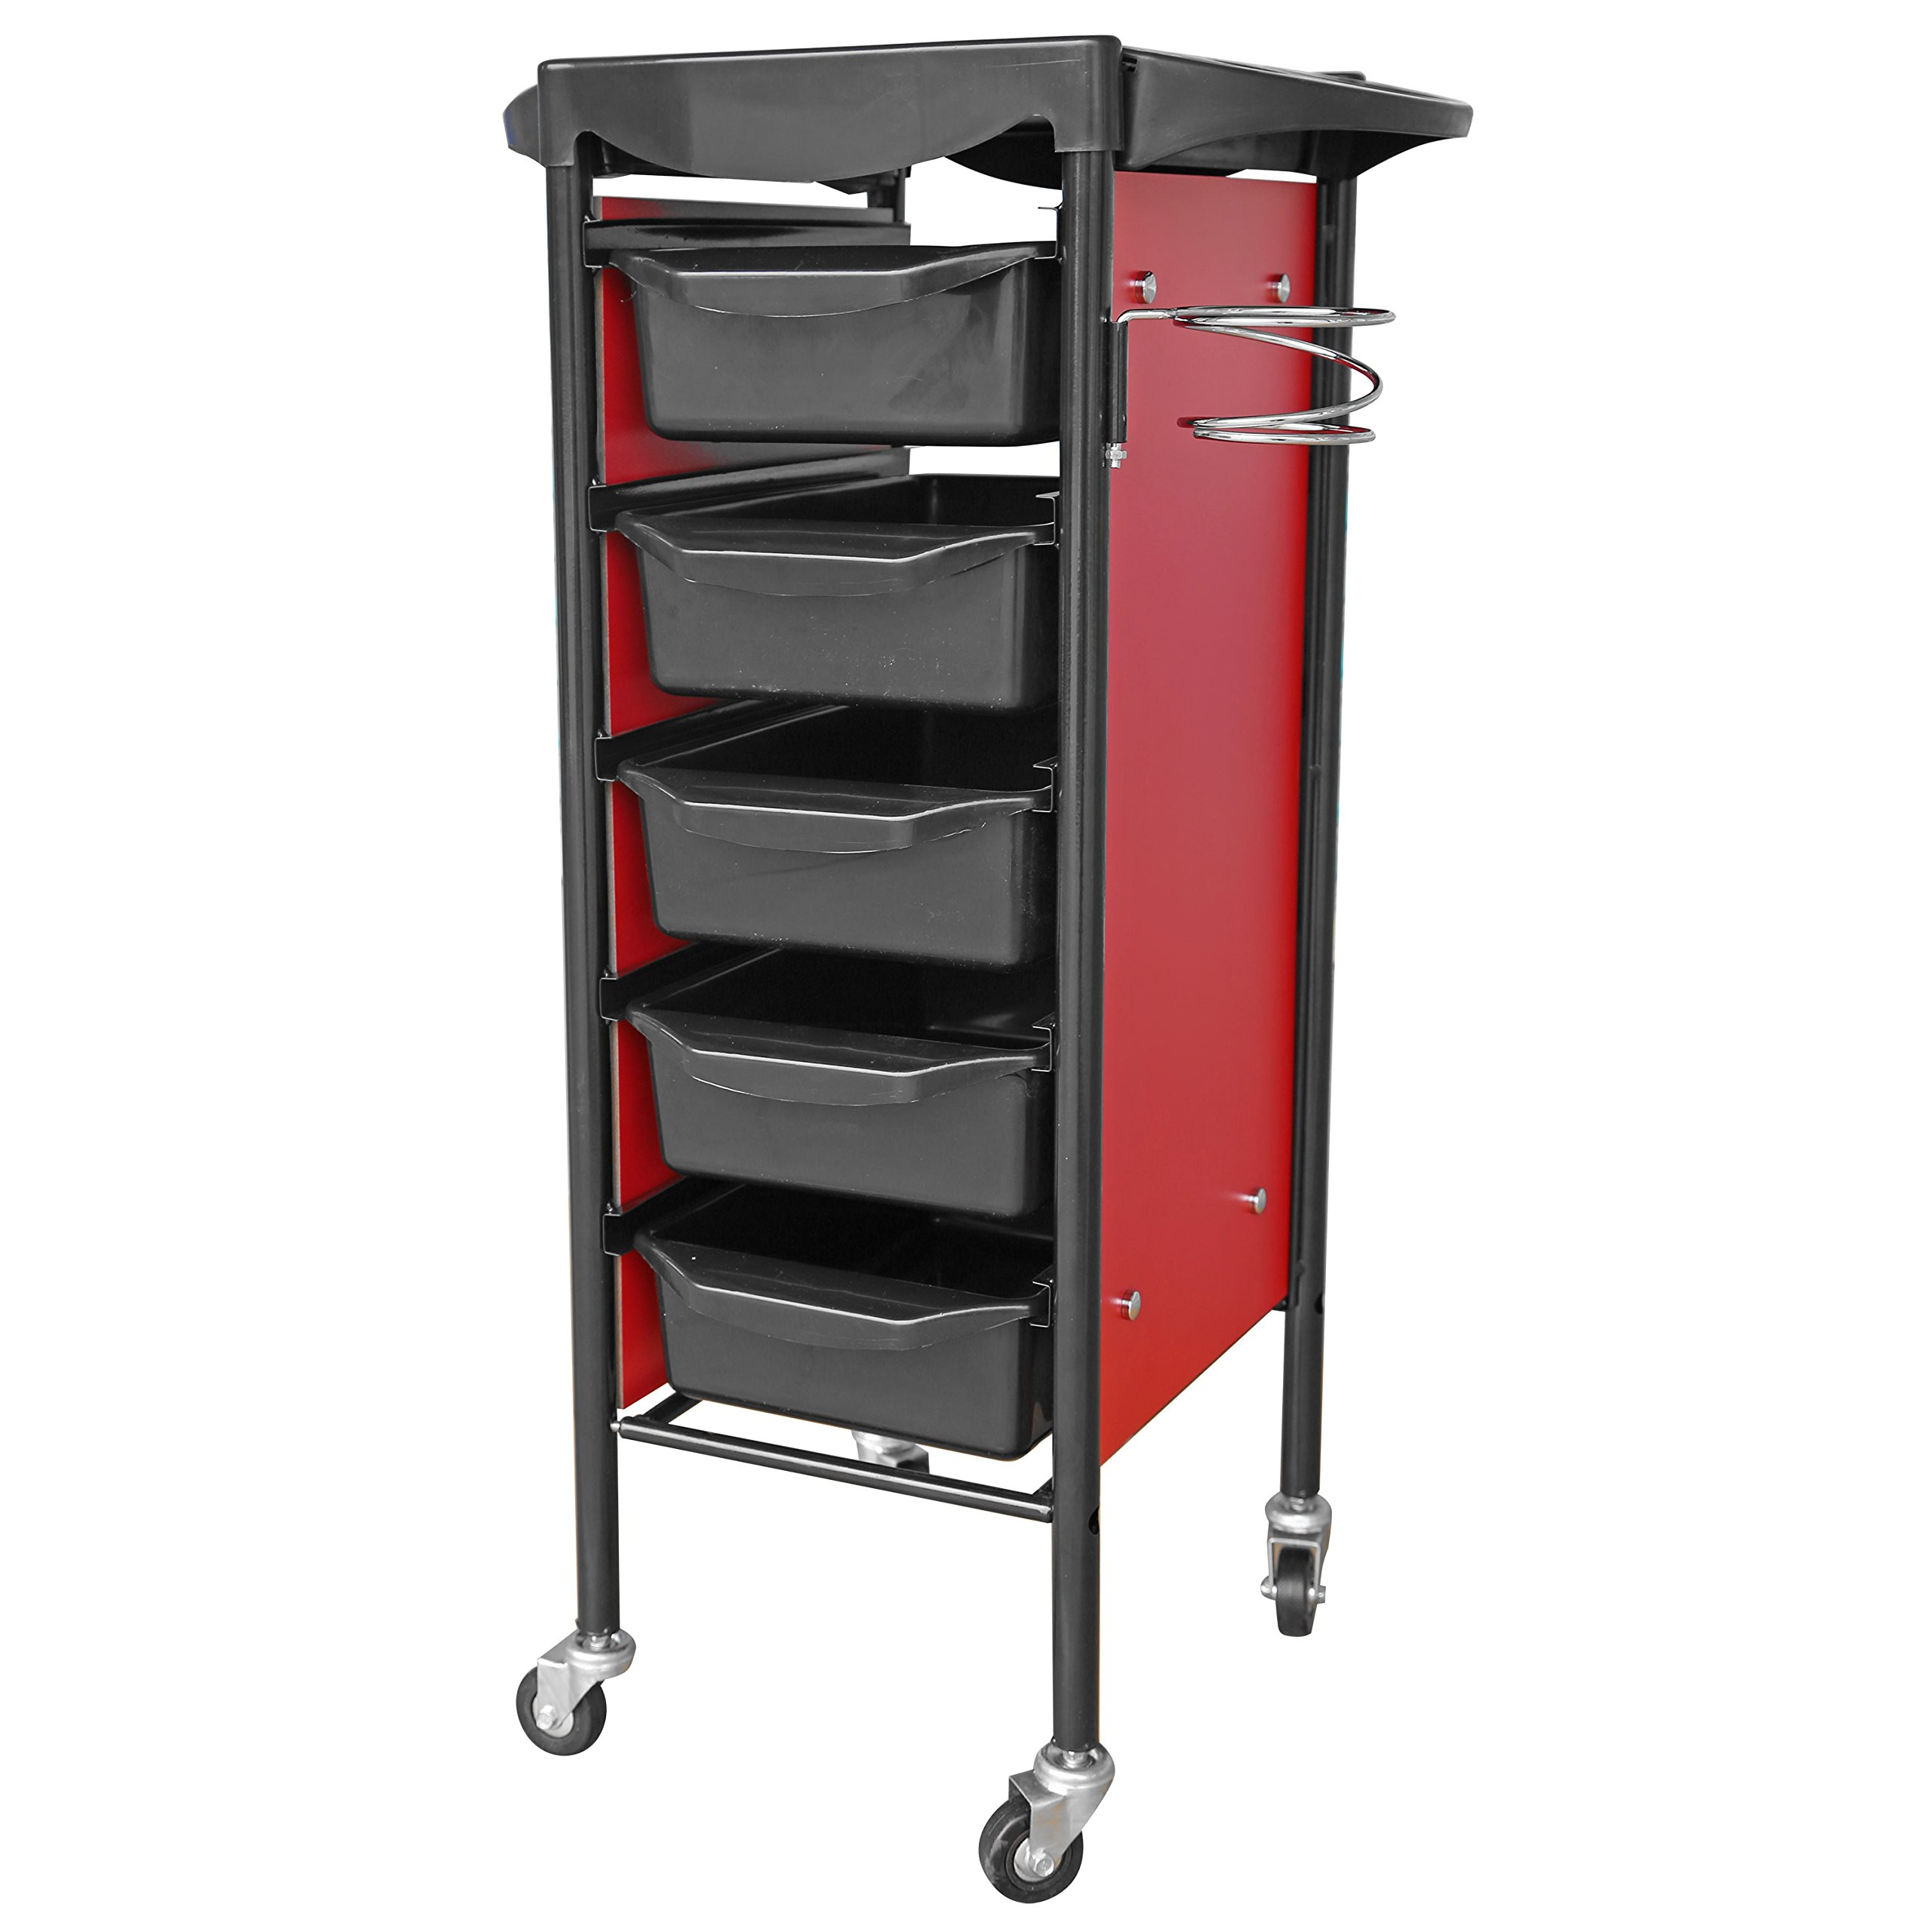 crownroyaljack Beauty Salon Rolling Trolley Storage Cart with 5 Removable Drawer, Red